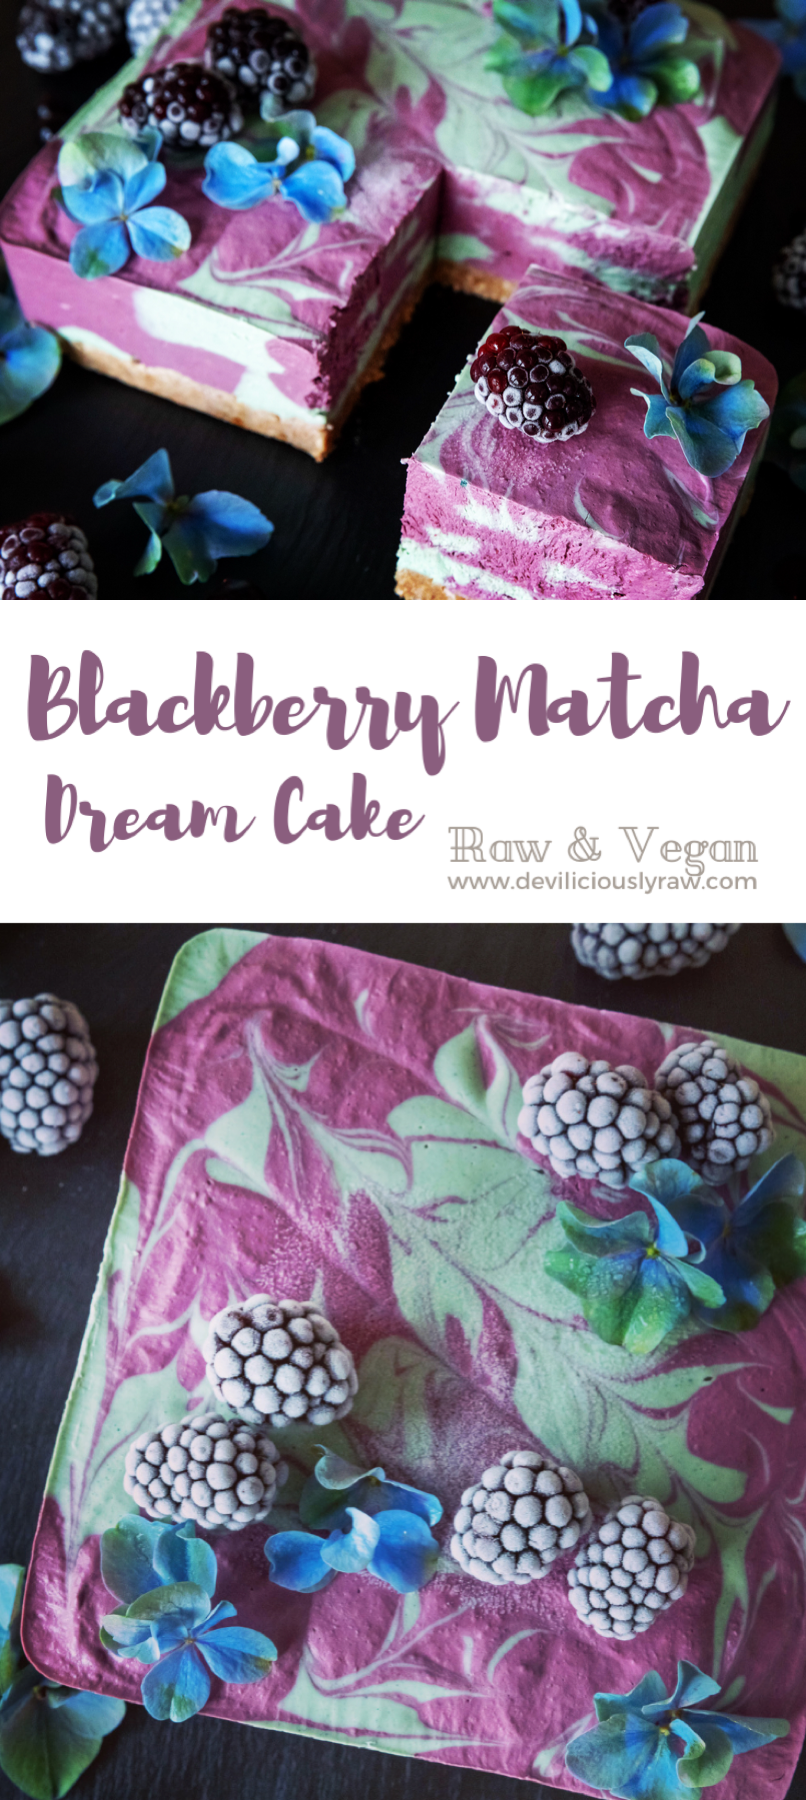 Blackberry Lime Dream Cake